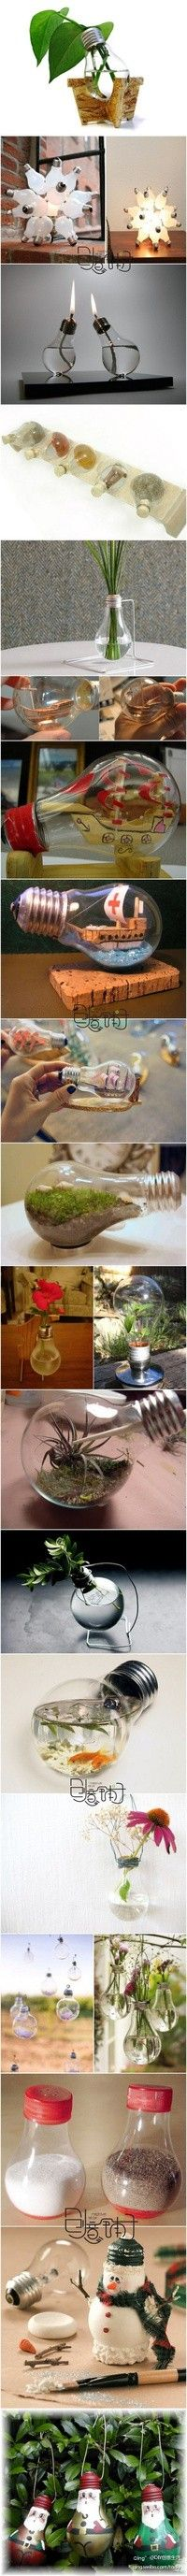 Lots of crafty ways to re-purpose light bulbs!